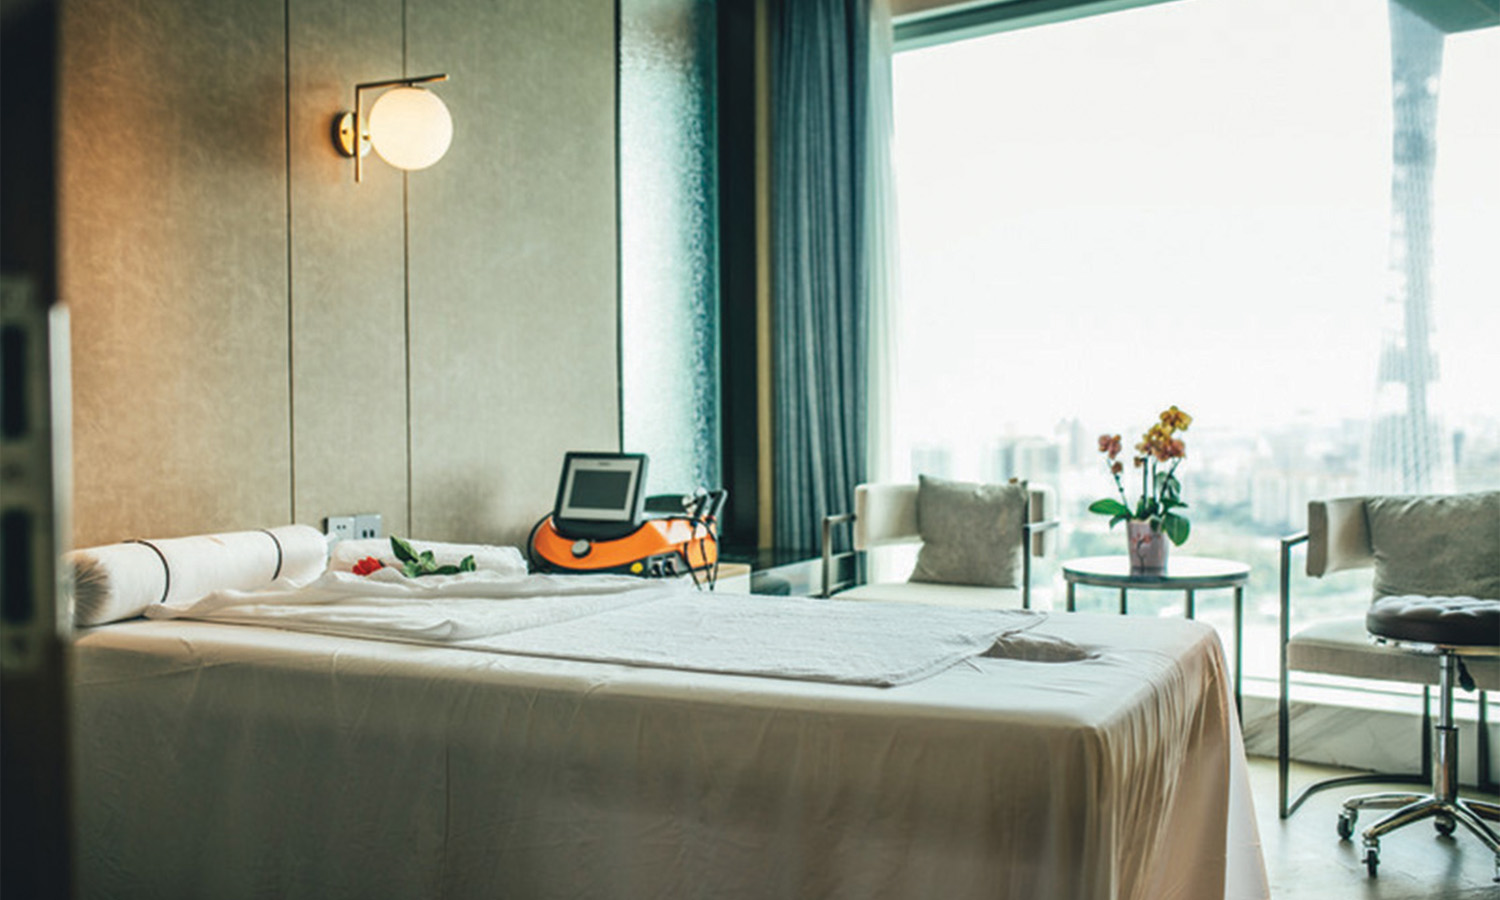 Spa and Aesthetic Center at Elegant Hotel Guangzhou